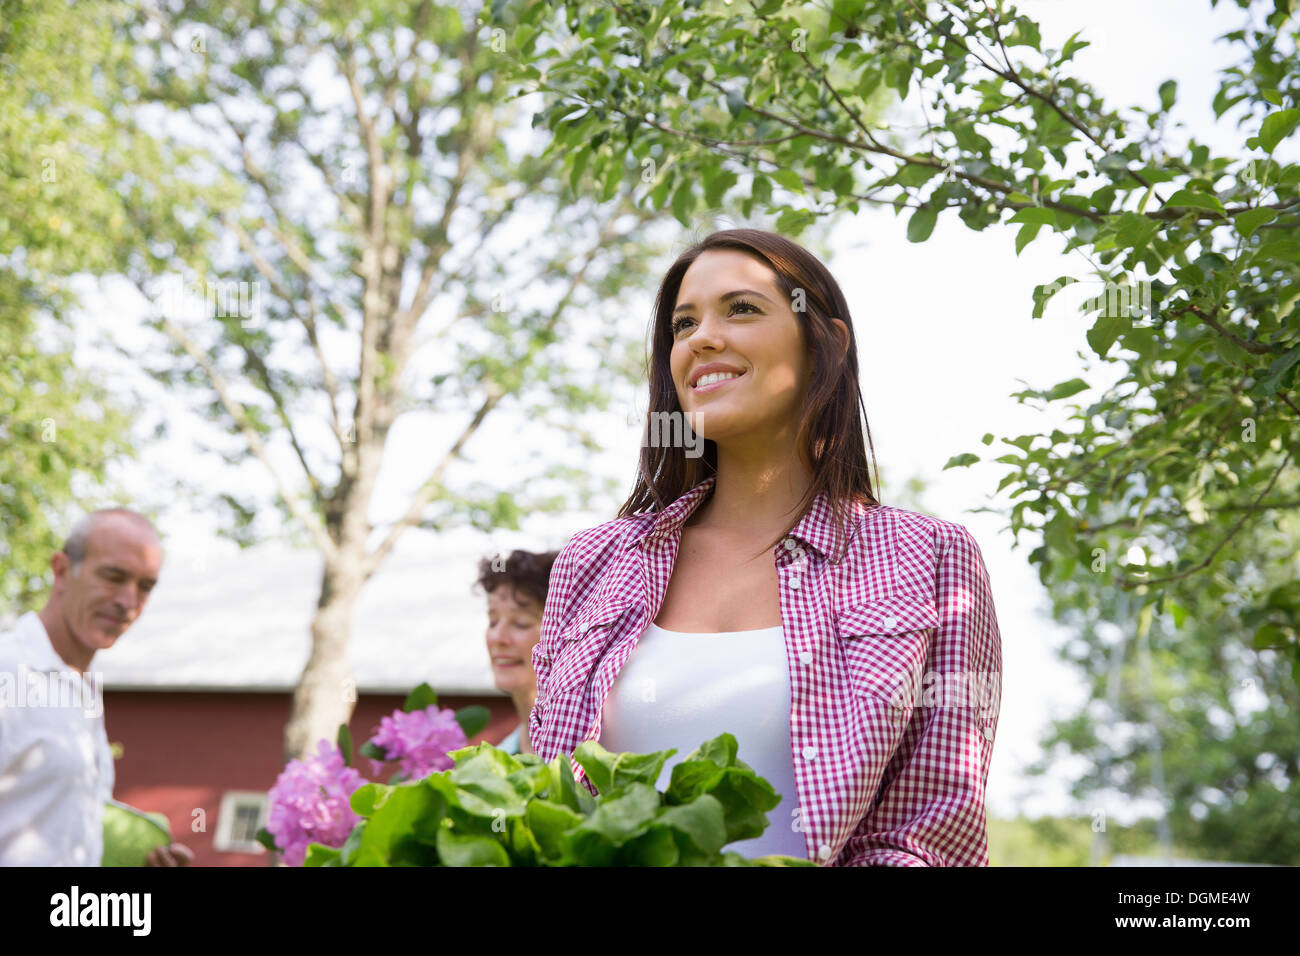 Family party. Three people, a man and woman, and a young girl carrying a bowl full of salad leaves. - Stock Image